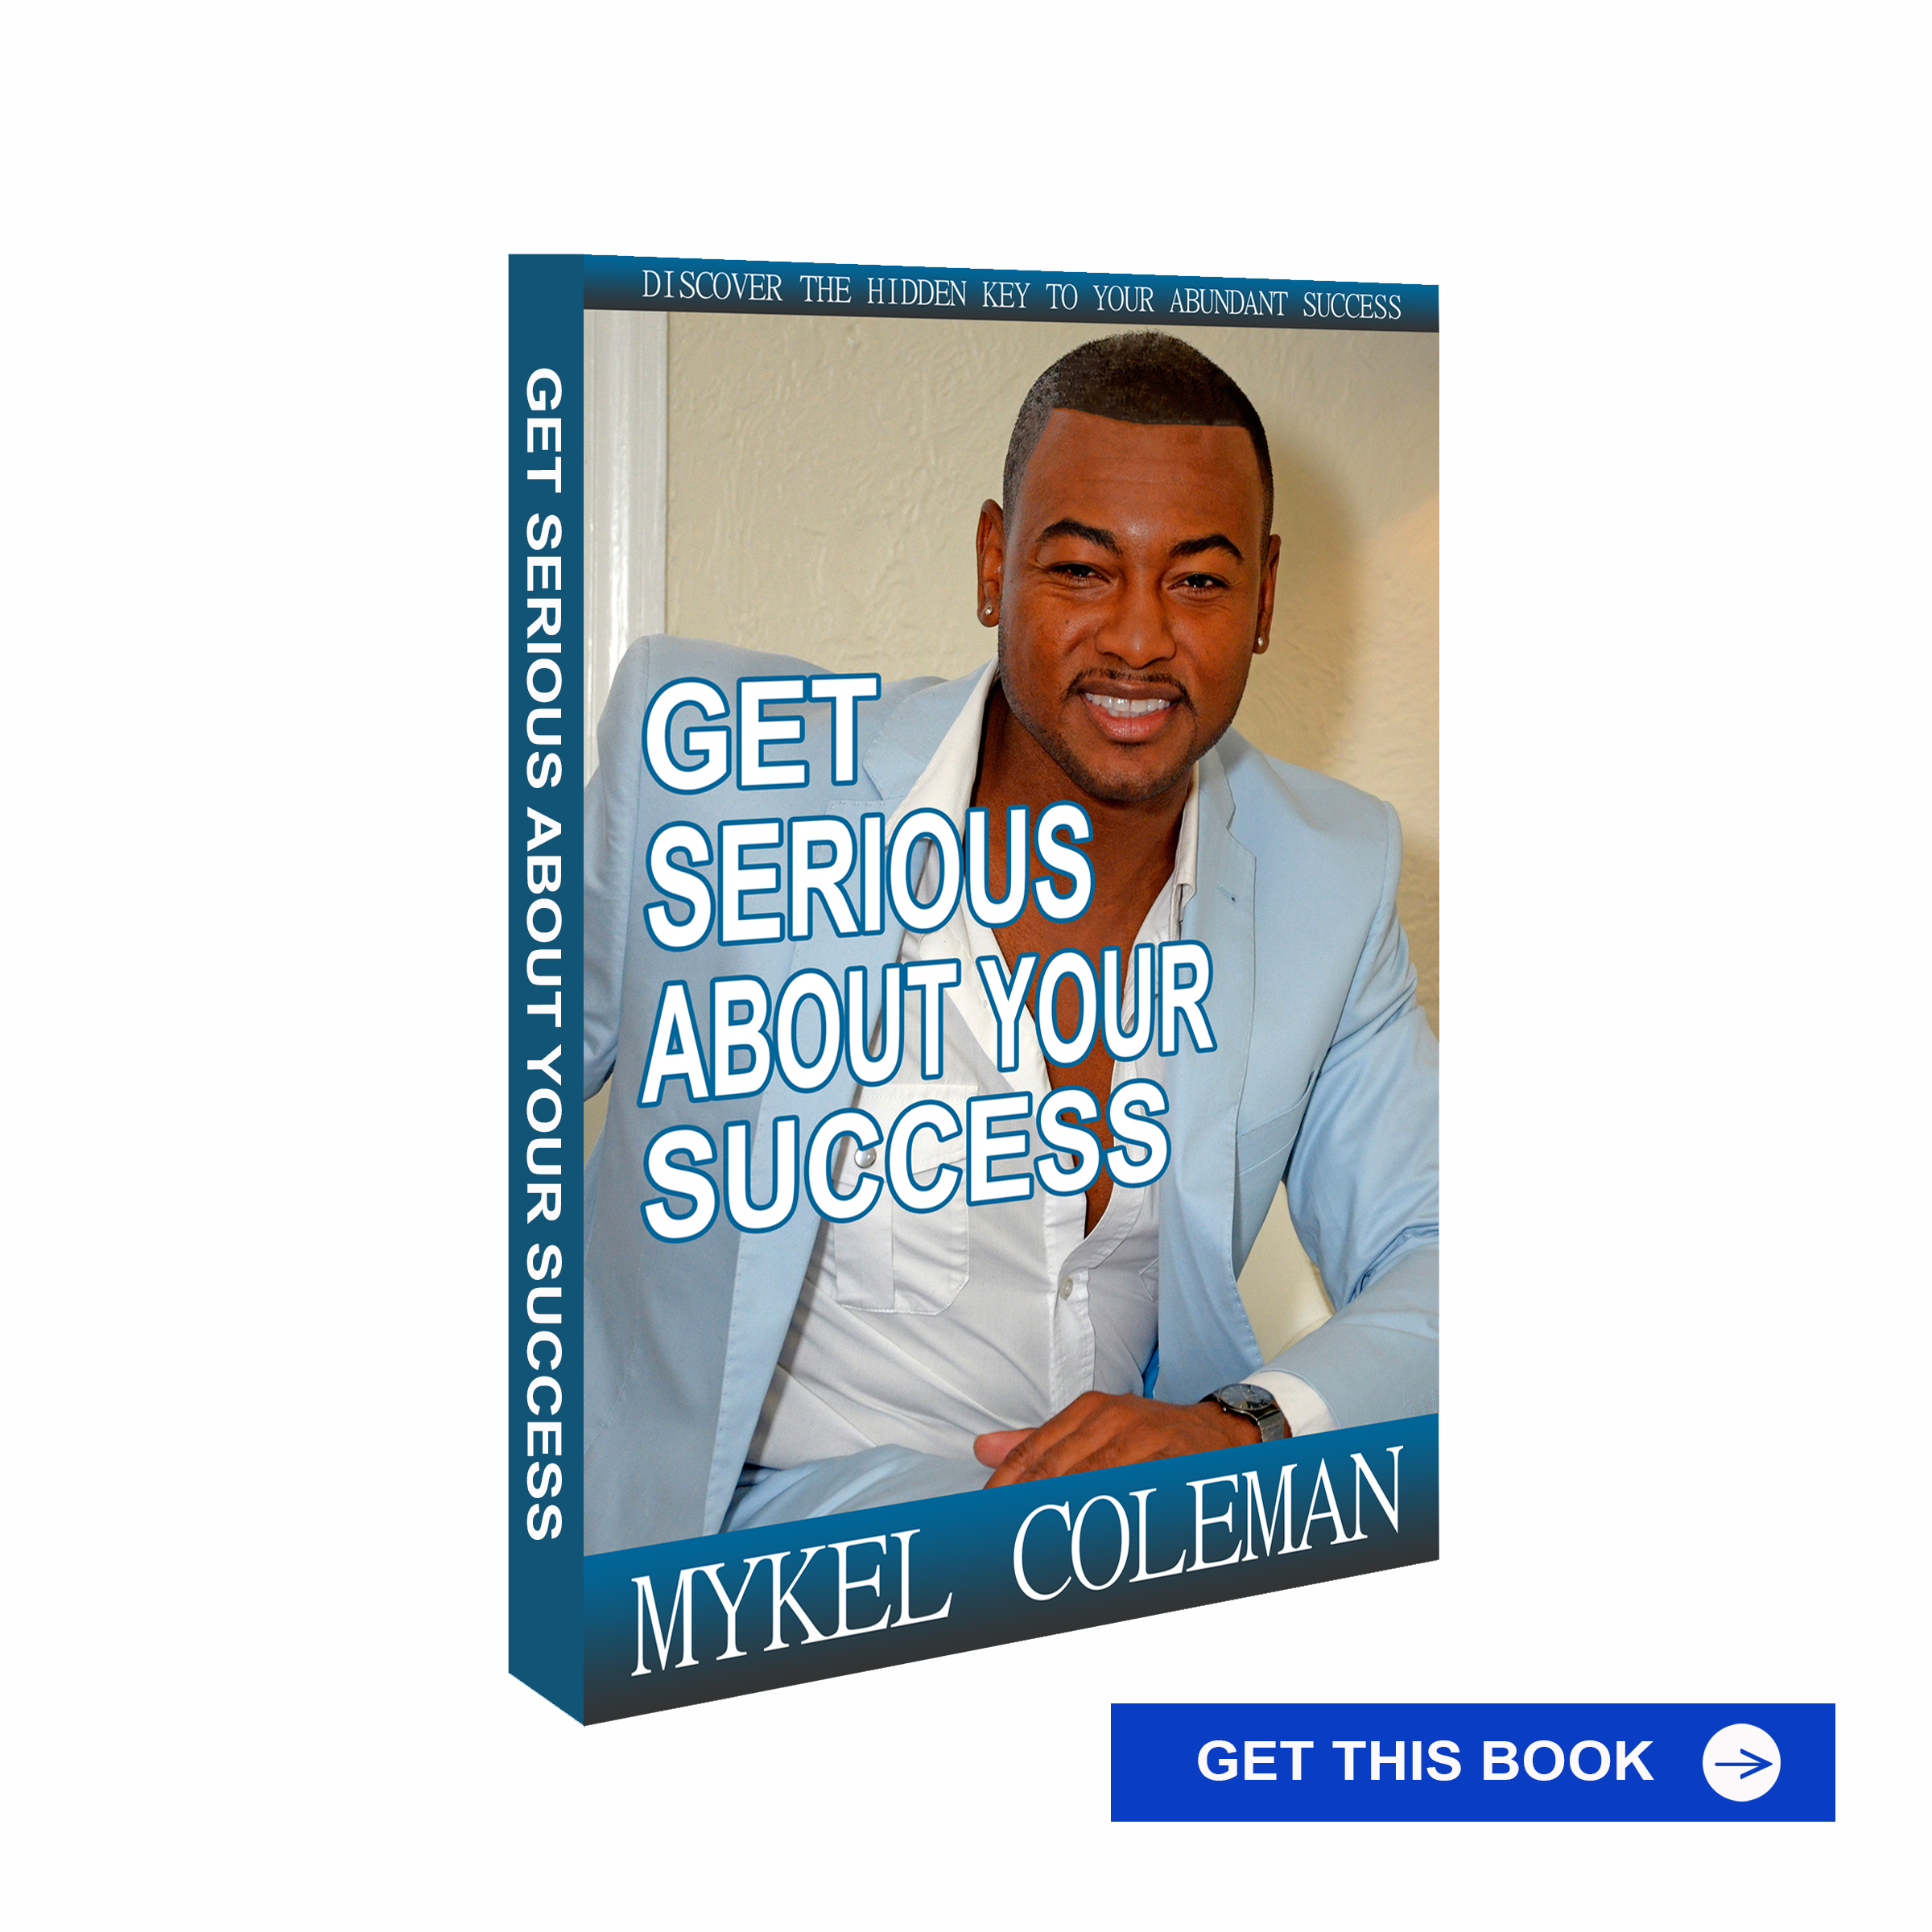 Get Serious About Your Success Book Cove